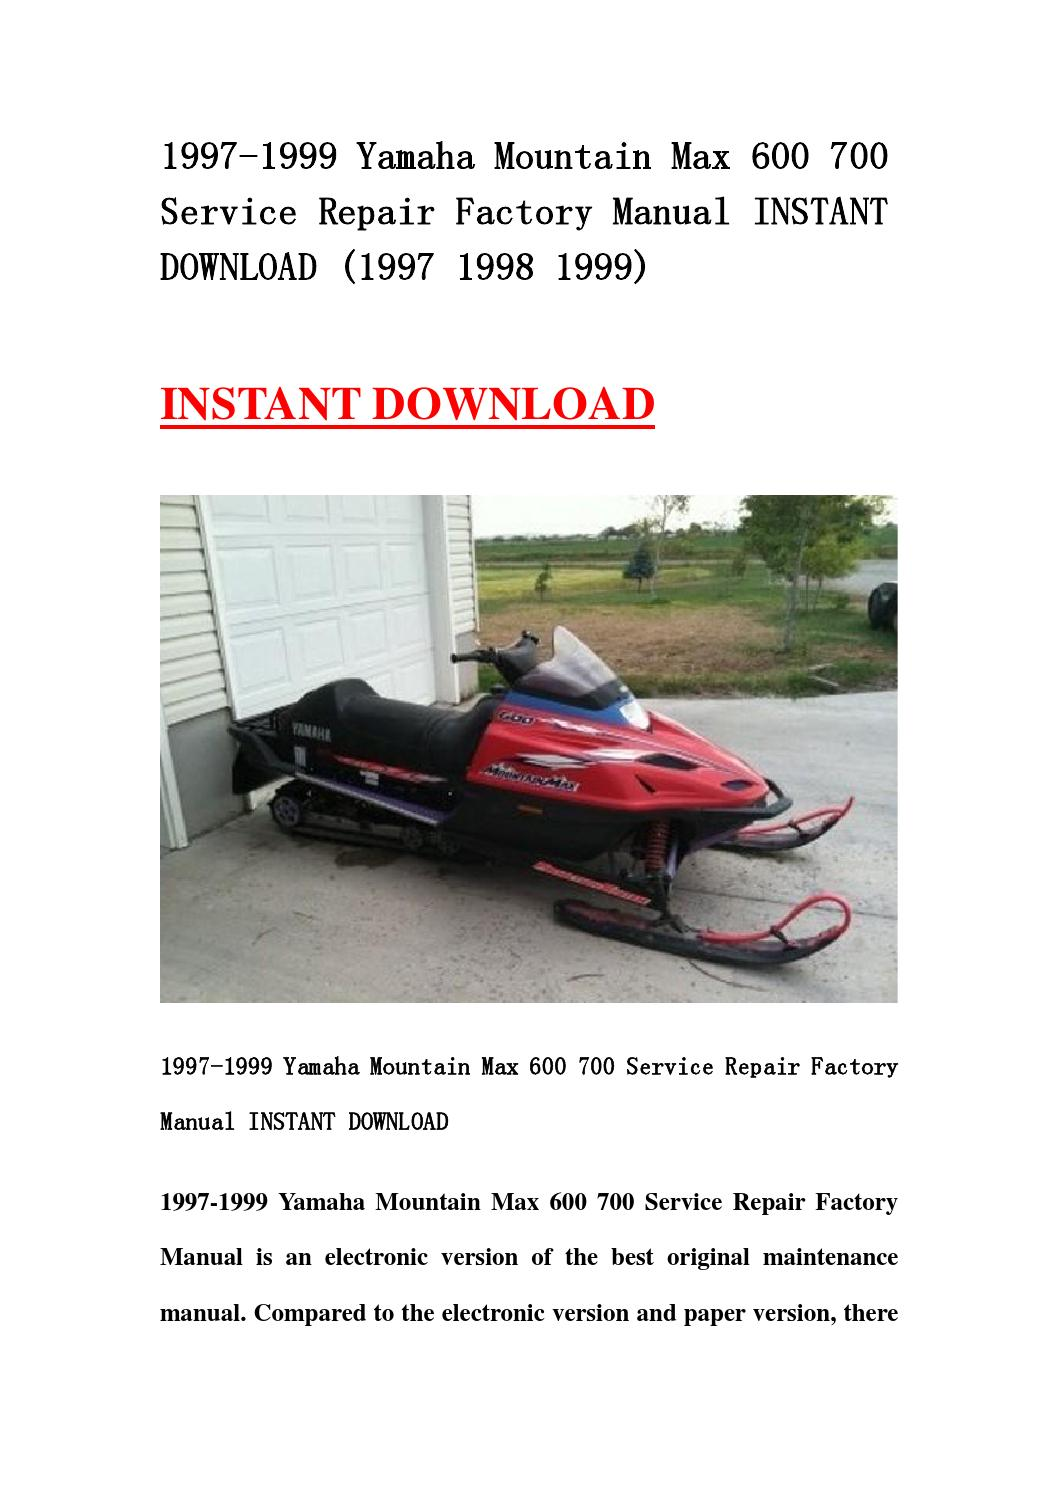 1997 1999 Yamaha Mountain Max 600 700 Service Repair